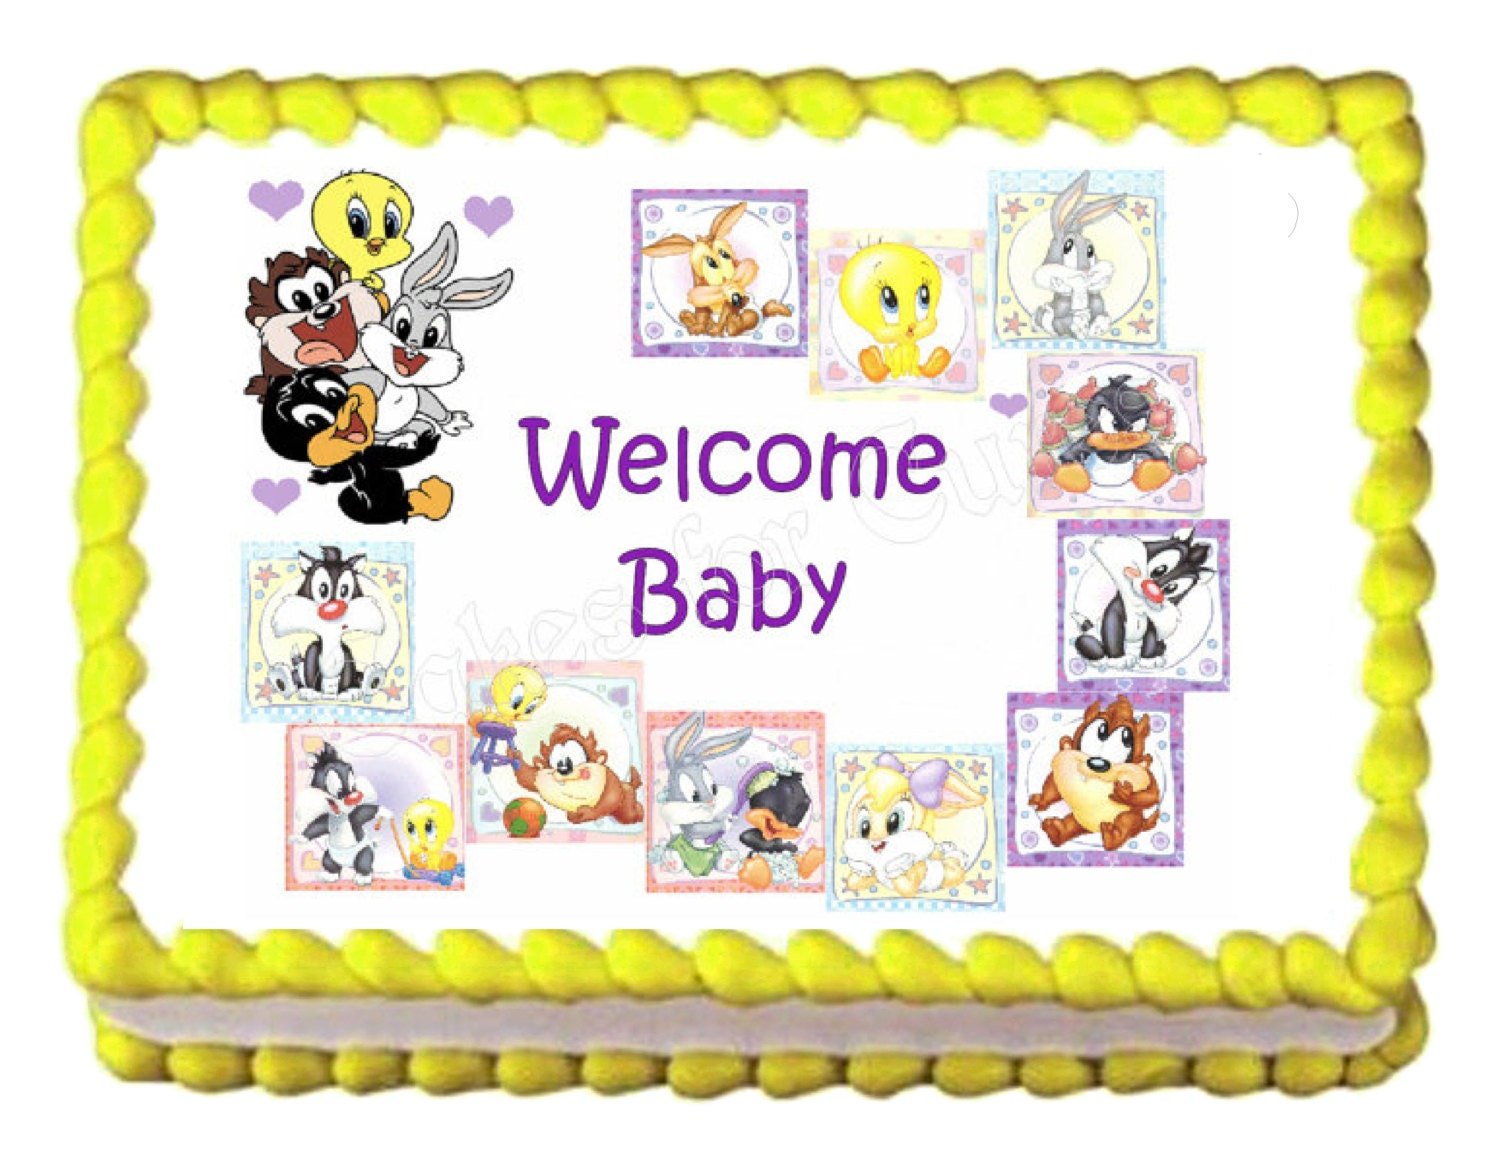 Baby shower baby looney tunes party decoration edible cake for Baby looney tune decoration